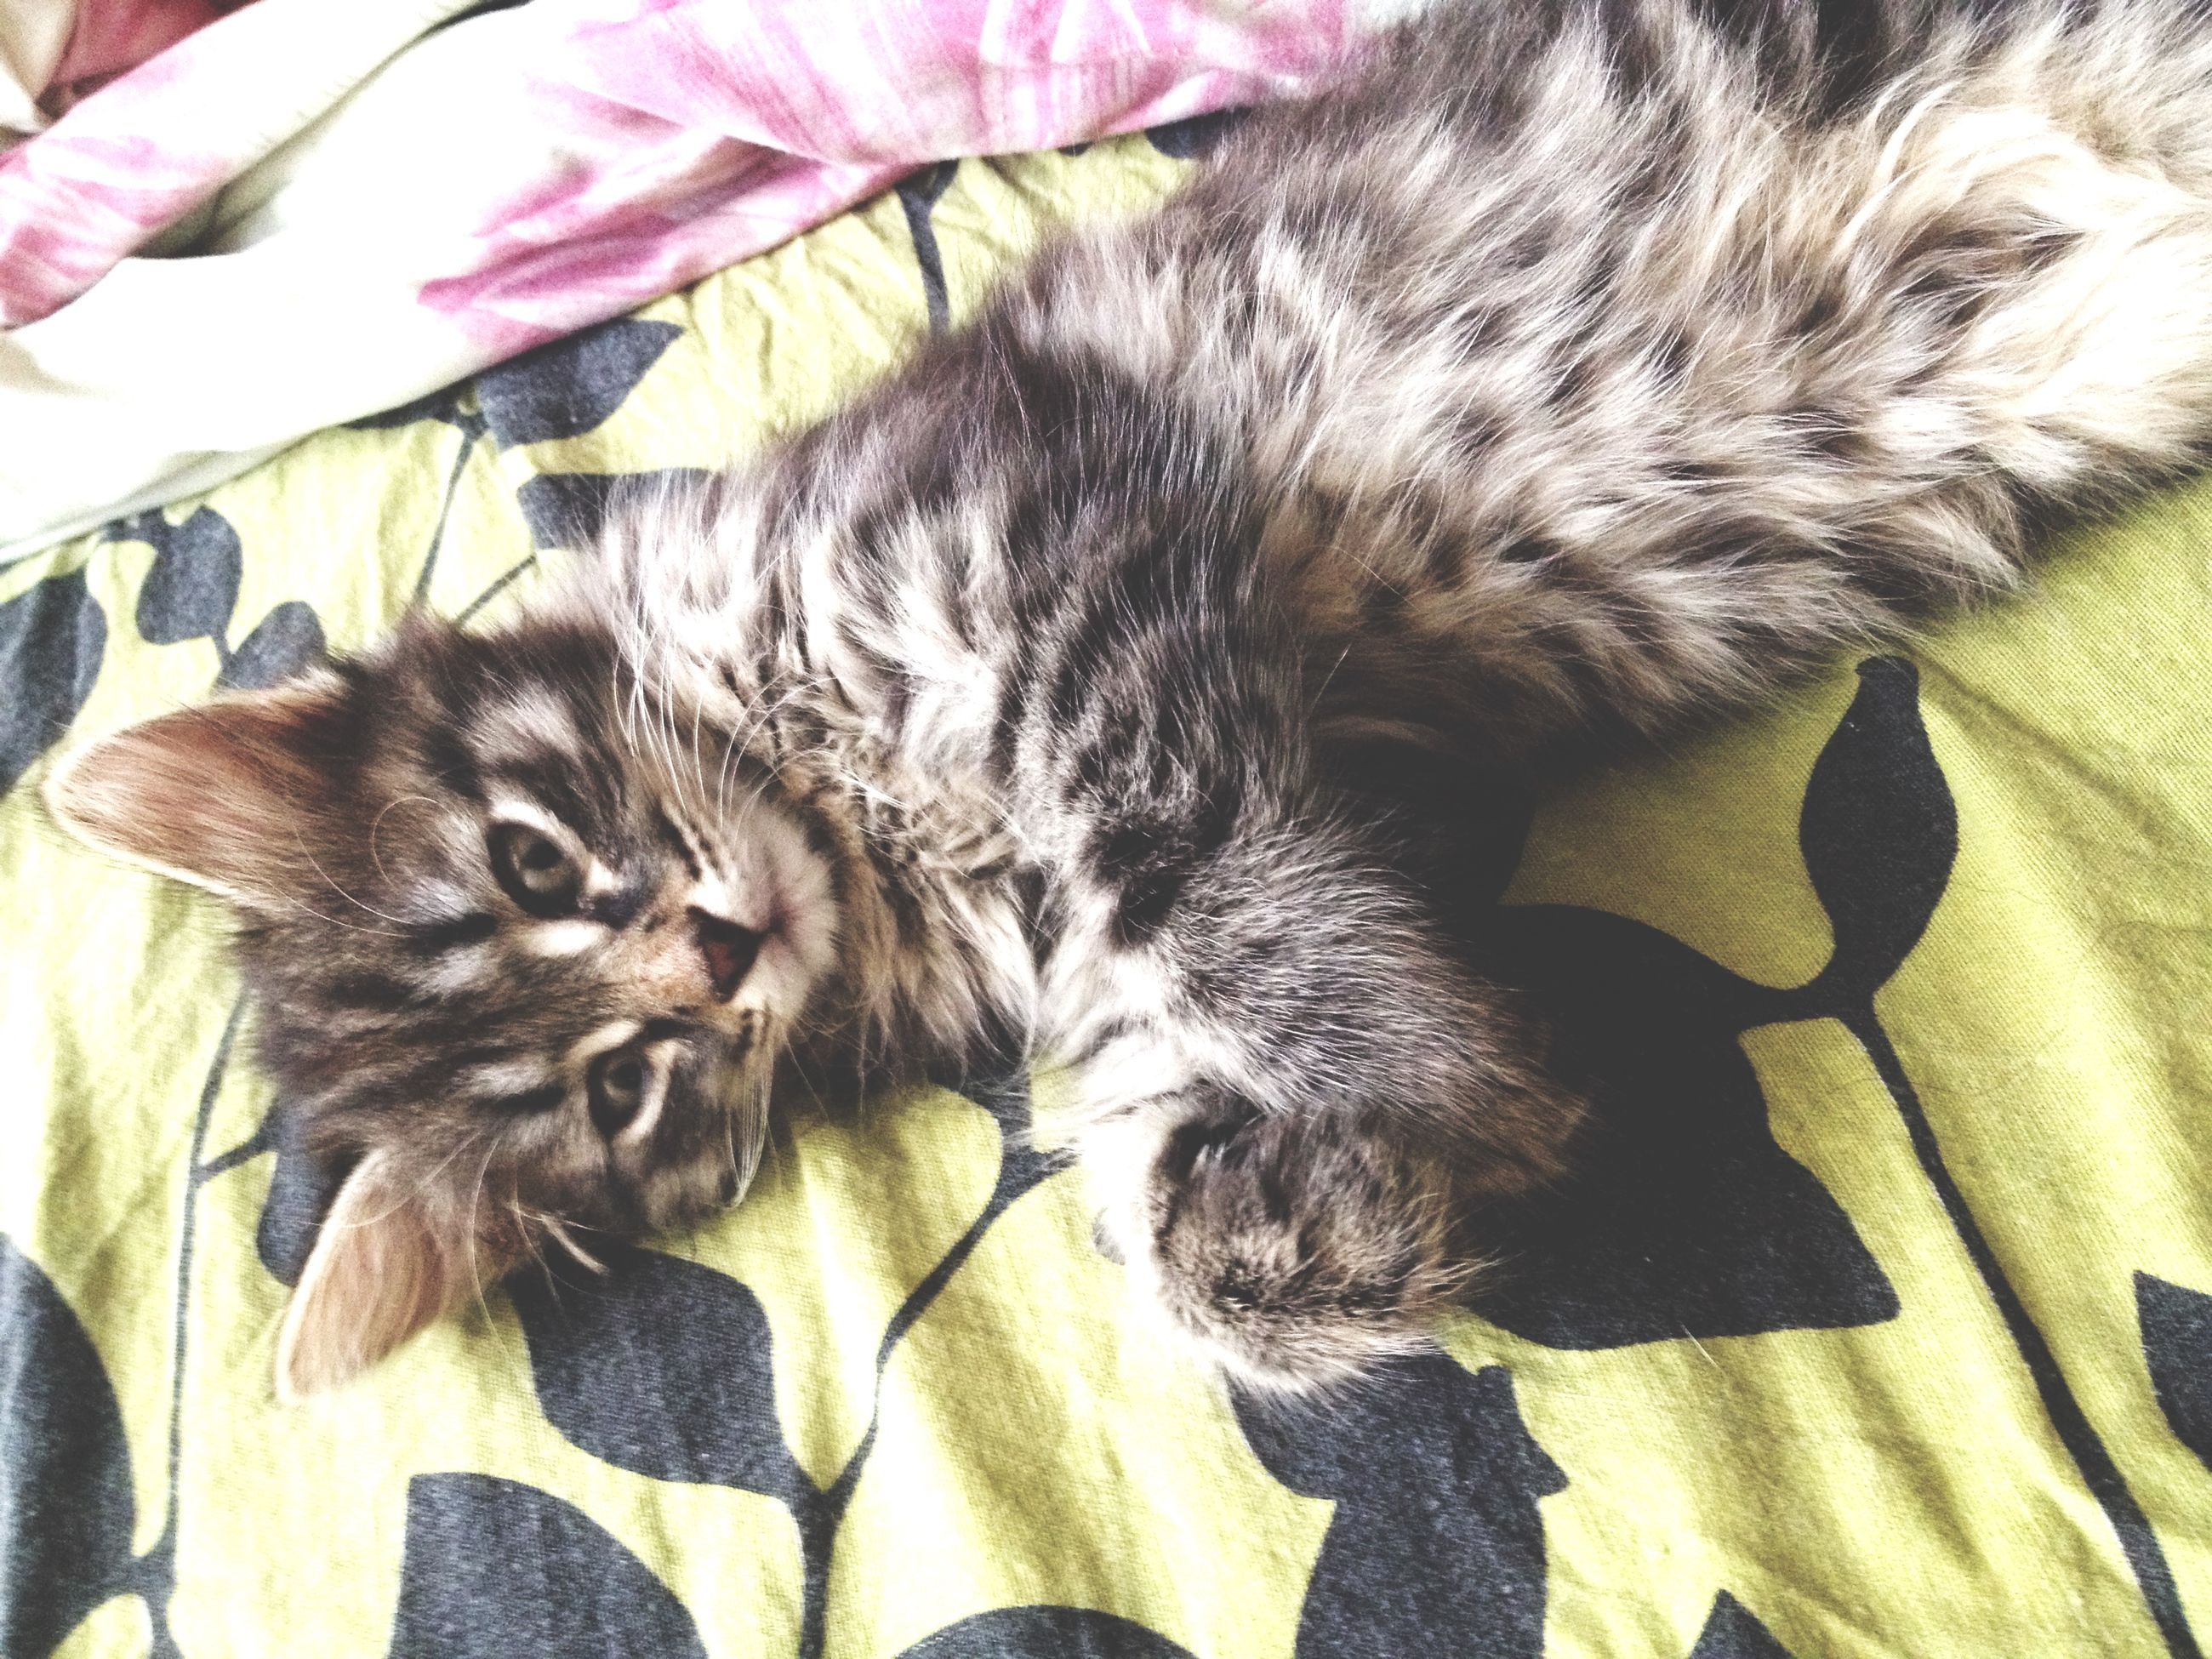 pets, domestic animals, mammal, animal themes, indoors, one animal, domestic cat, relaxation, cat, bed, feline, resting, sleeping, lying down, high angle view, whisker, close-up, sofa, home interior, comfortable